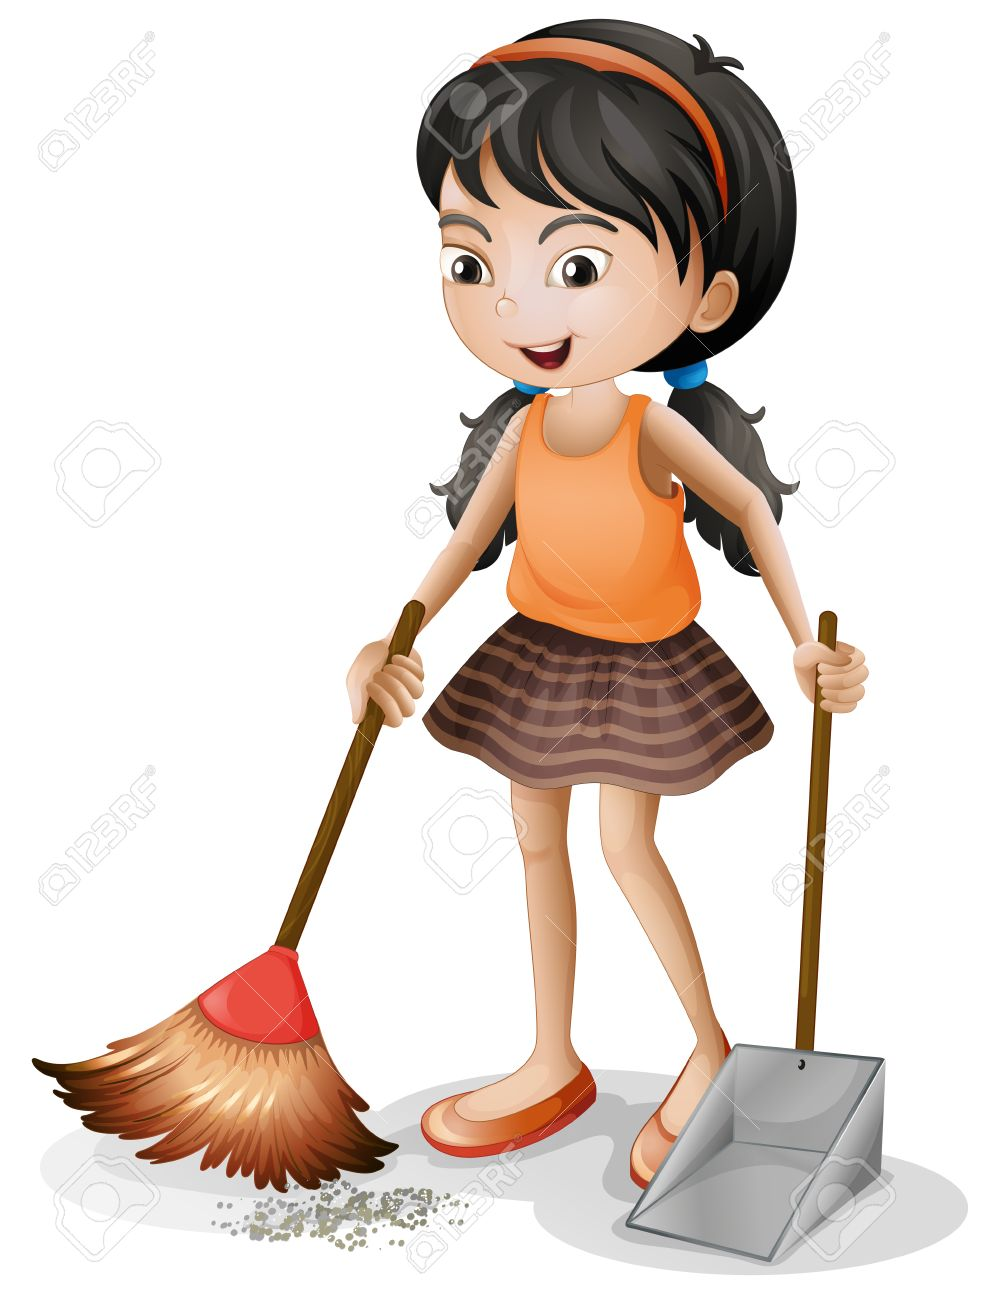 Illustration of a young girl sweeping on a white background - 27137740